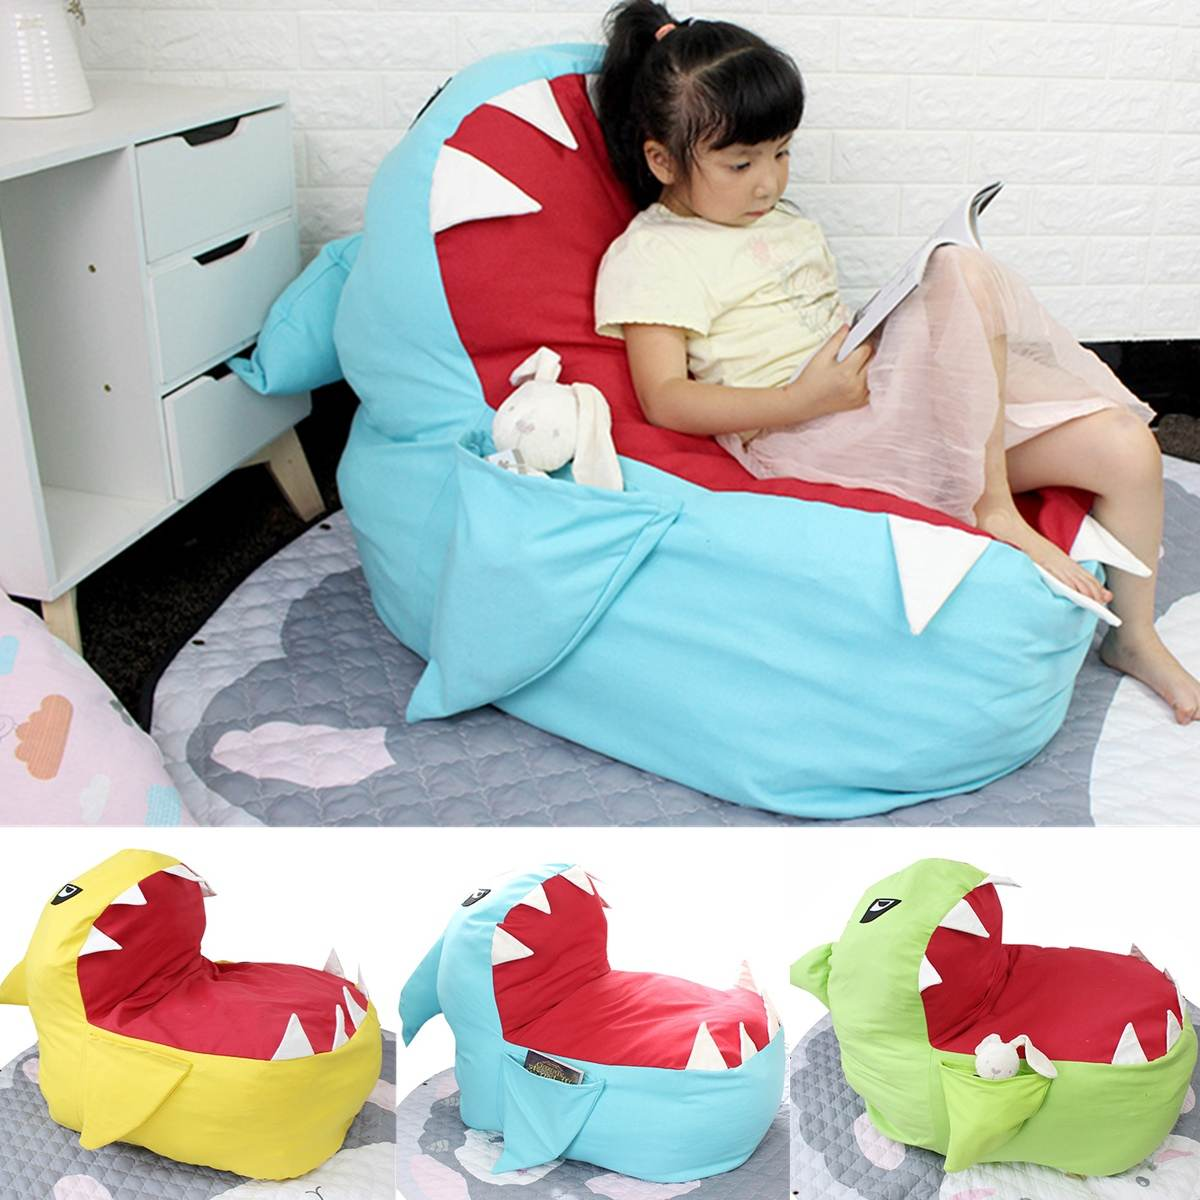 Phenomenal Children Seat Sofa Kids Bean Bag Cartoon Shark Skin Upscale Ibusinesslaw Wood Chair Design Ideas Ibusinesslaworg